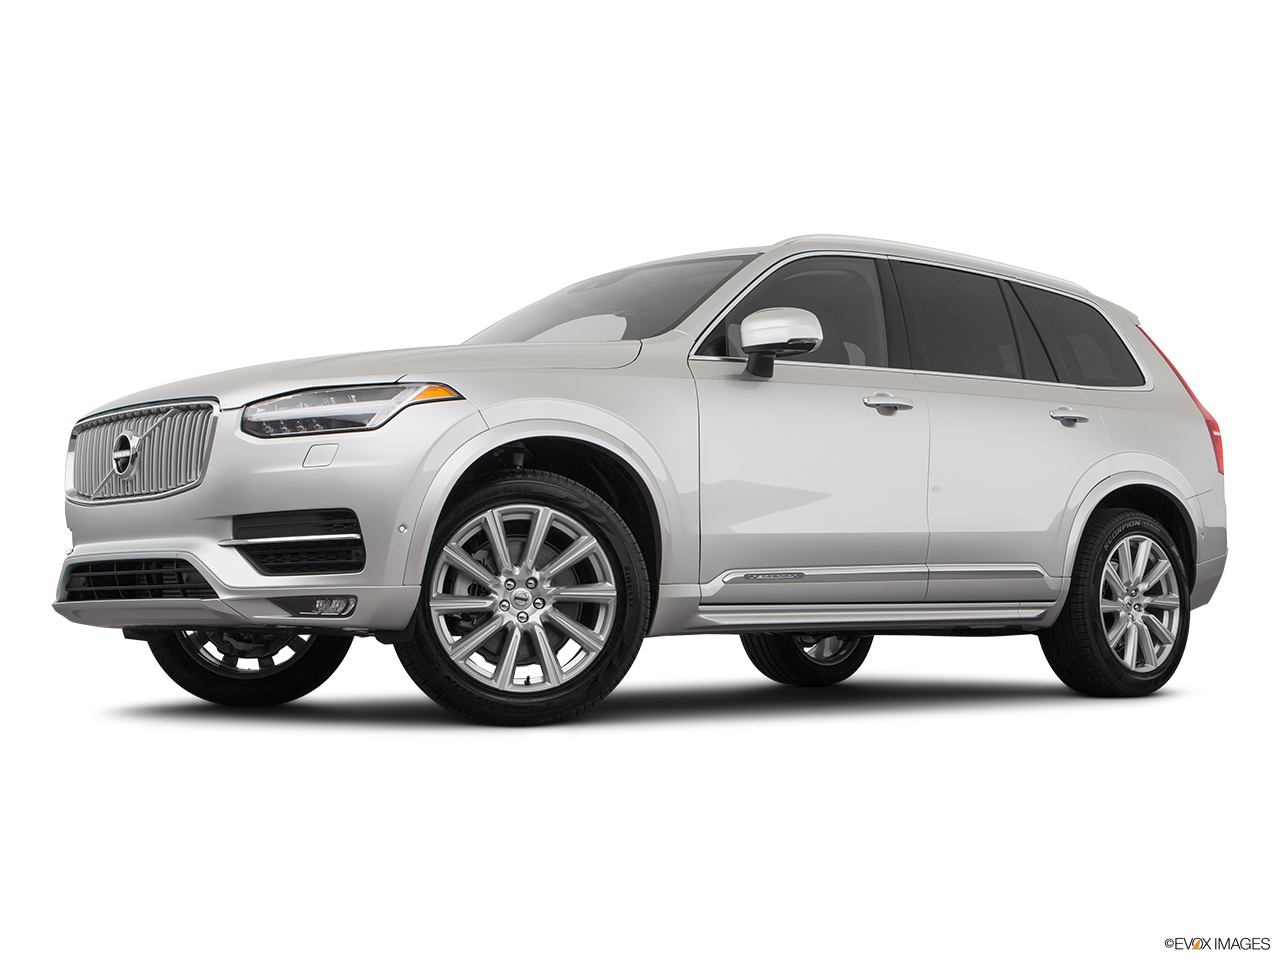 2019 Volvo XC90  T6 Inscription Low/wide front 5/8.